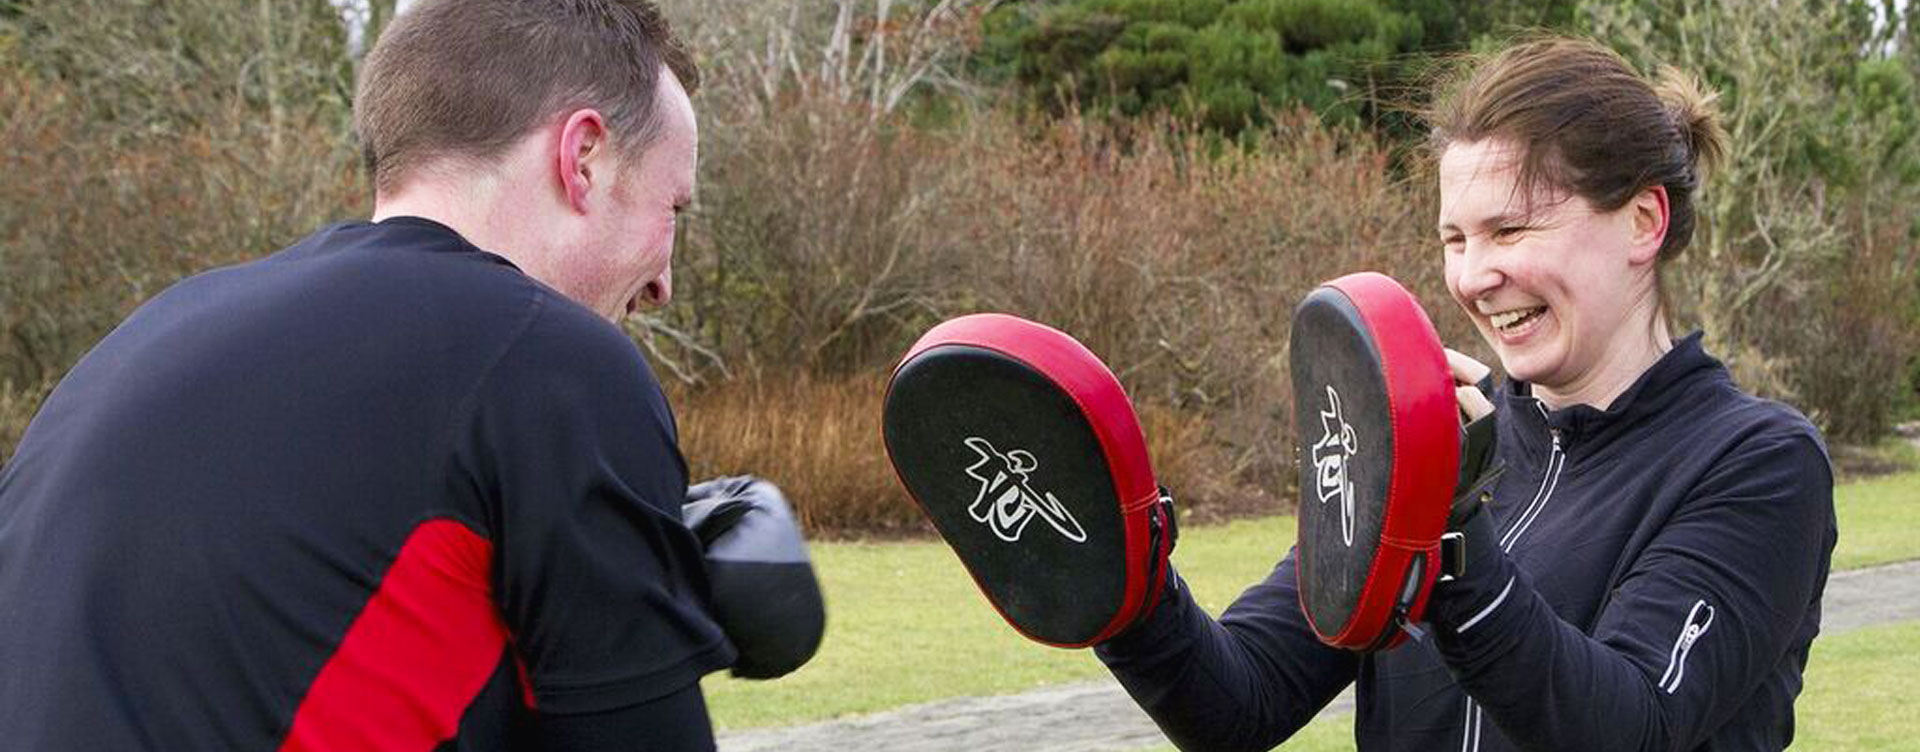 Personal training with RebelPT - Our team of fully certified Personal Trainers can take you through a one-on-one session or a small group (maximum 4-6 people) session.